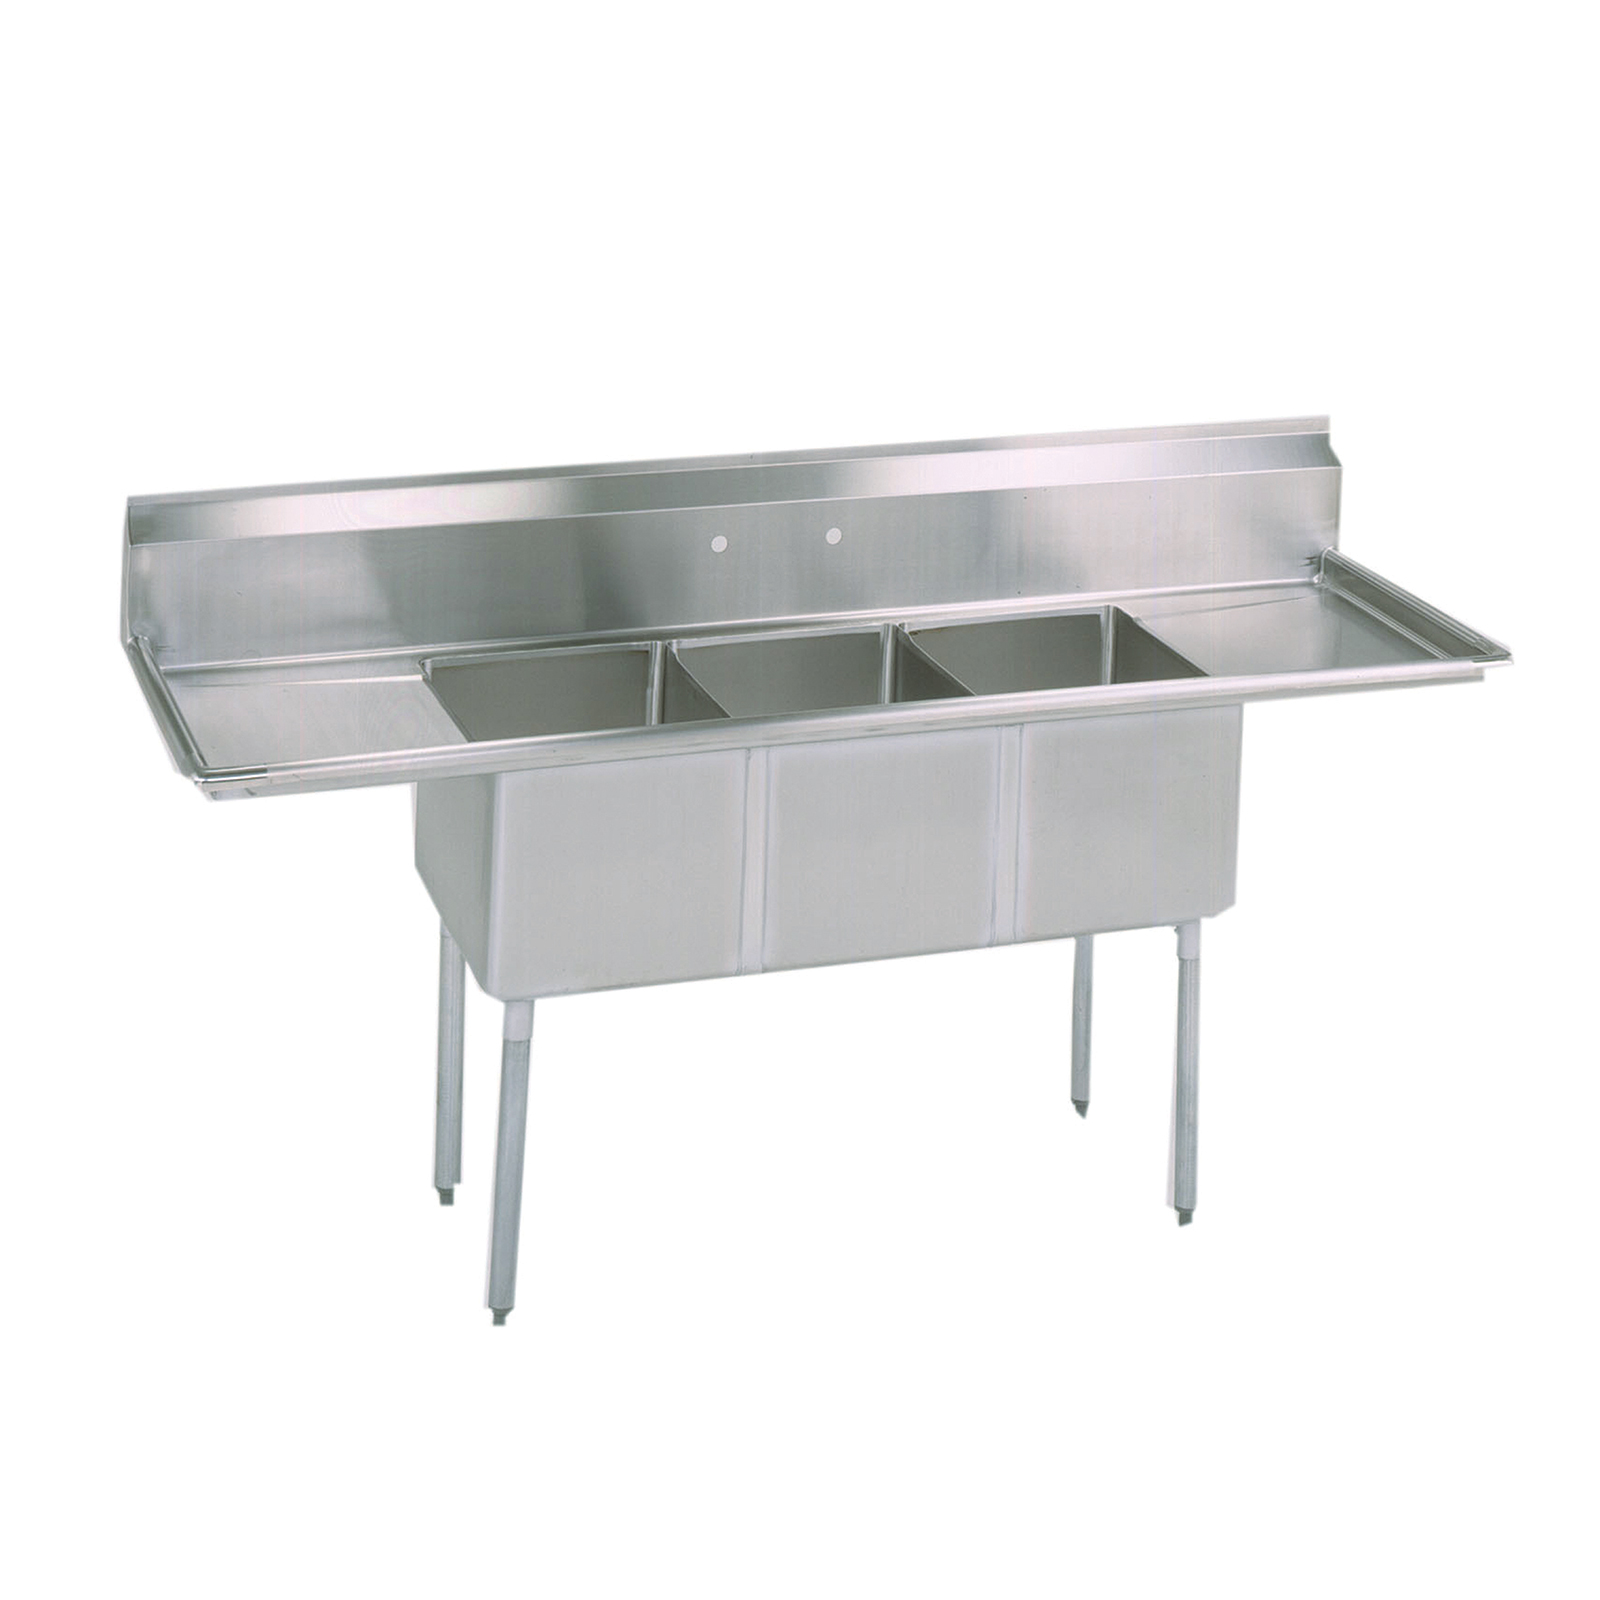 BK Resources BKS-3-15-14-15TS sink, (3) three compartment